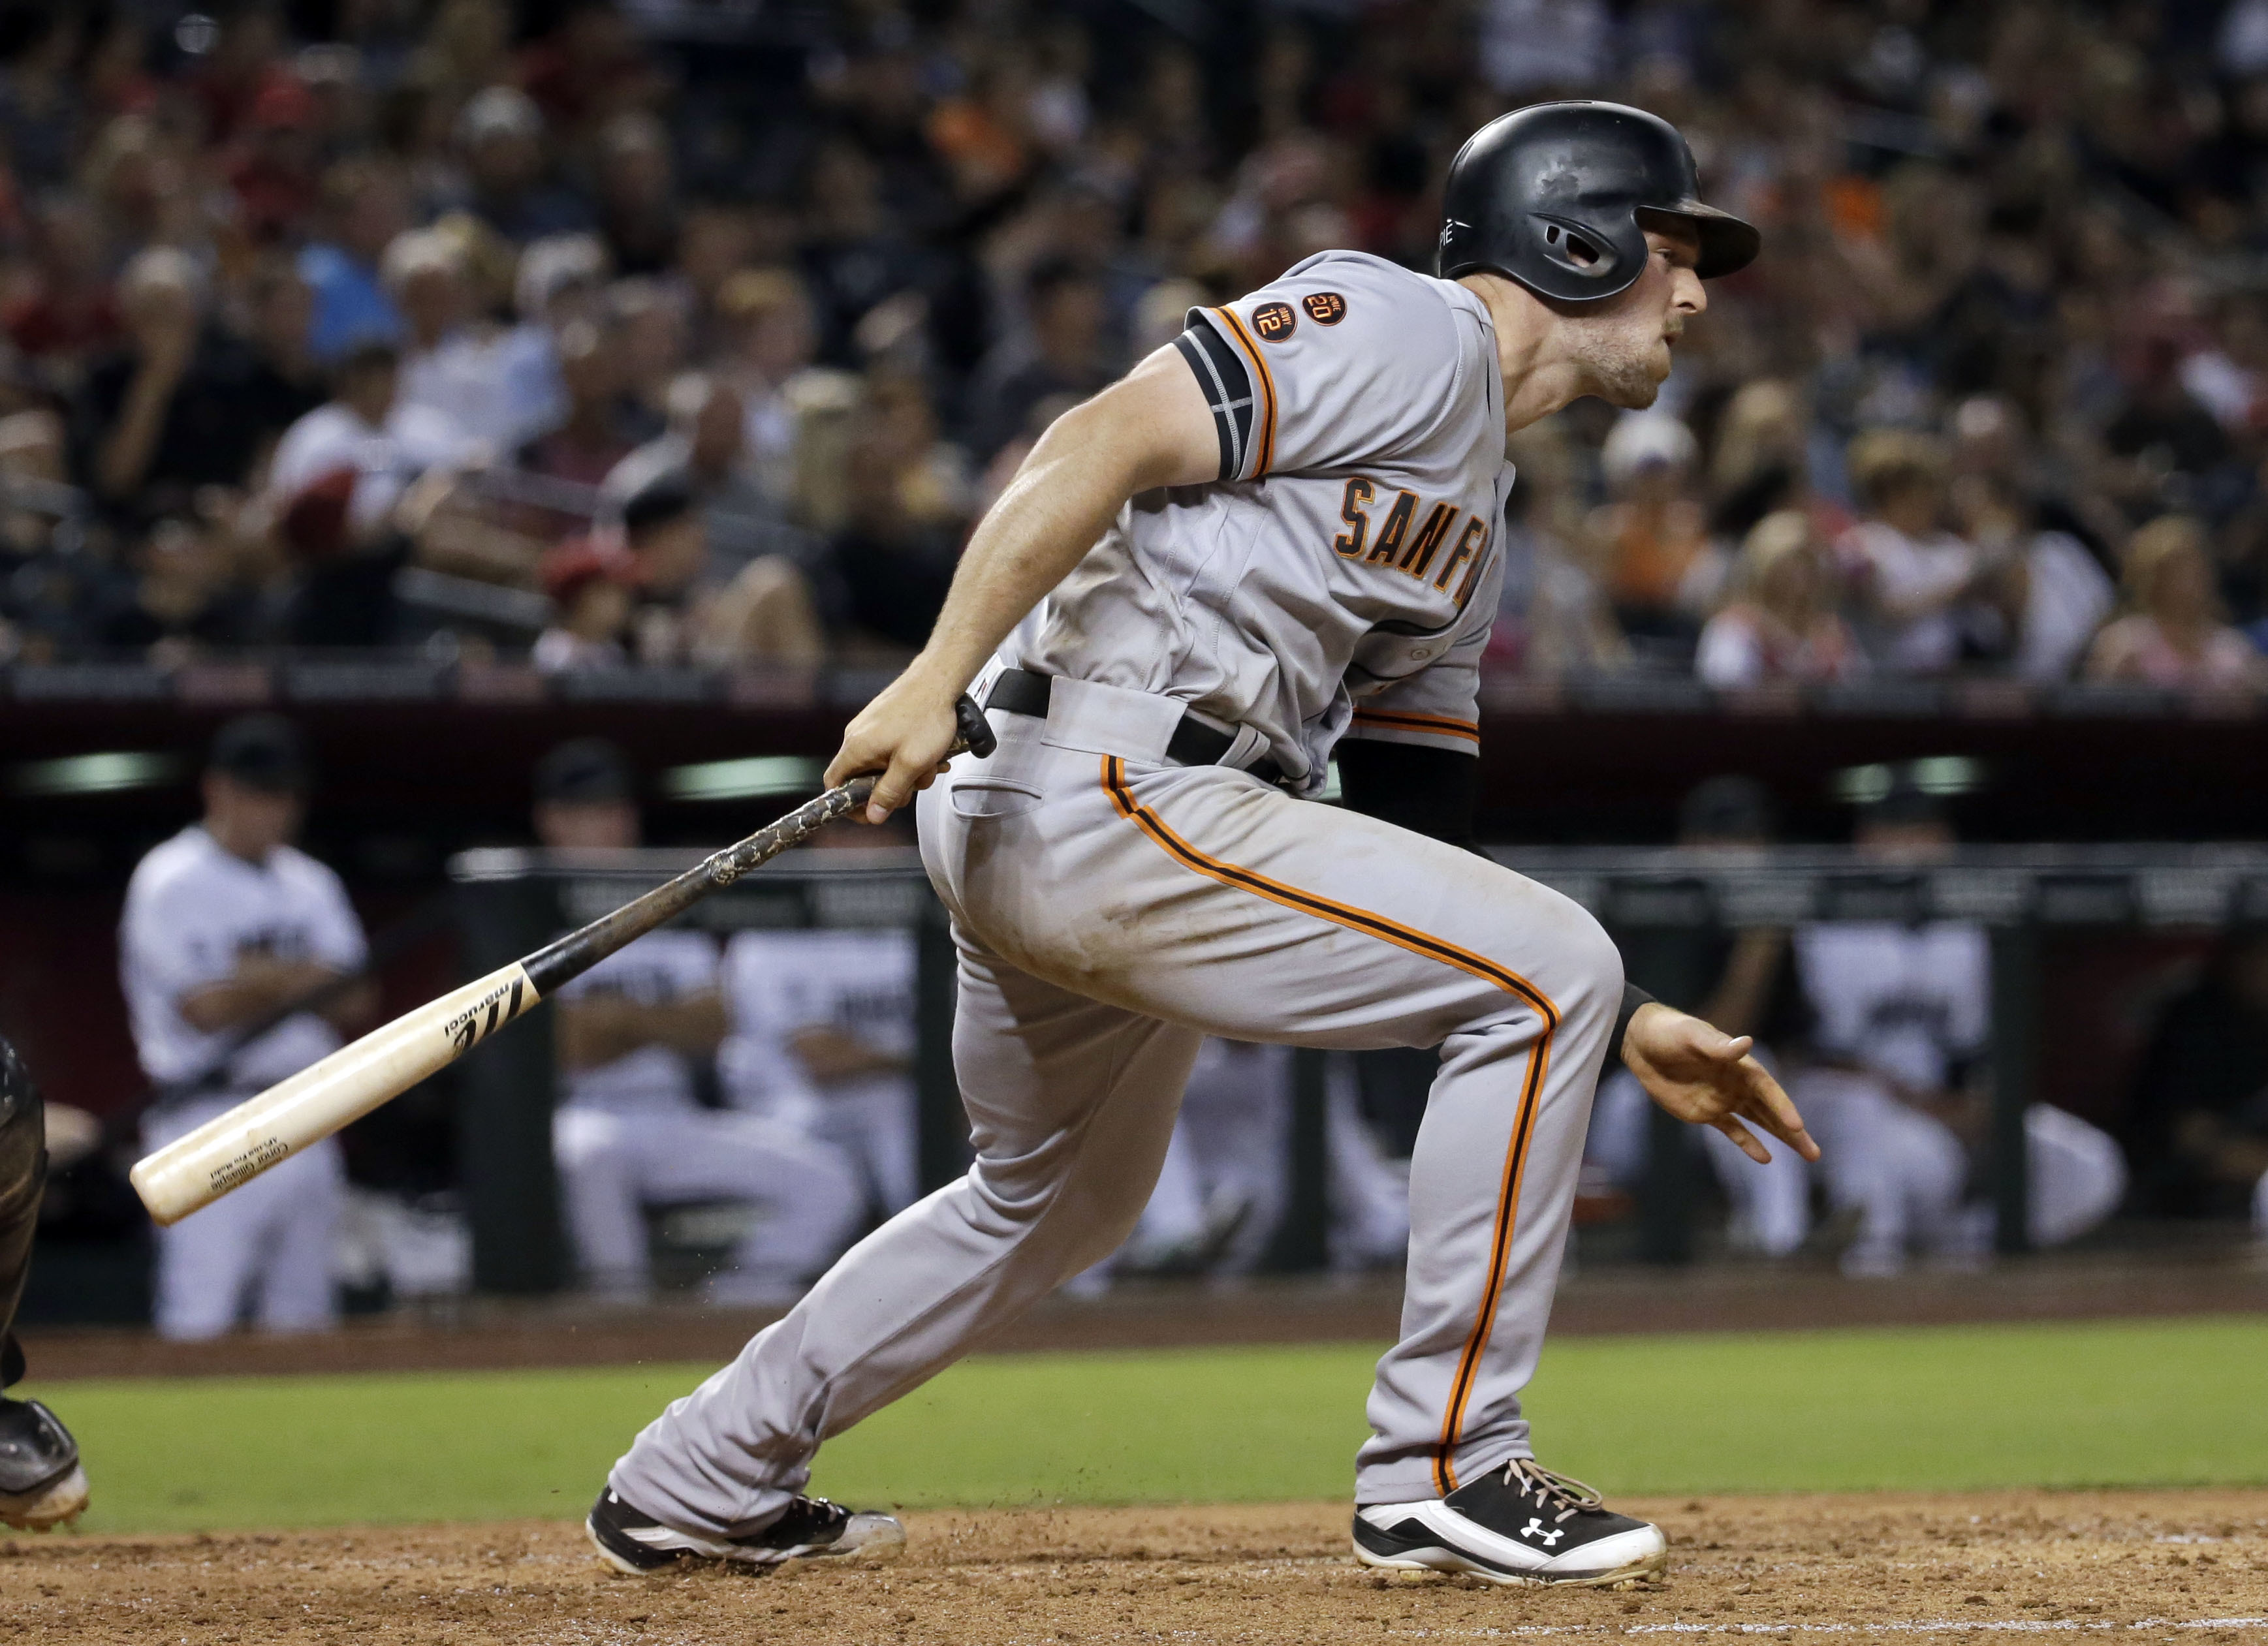 San Francisco Giants' Conor Gillaspie follows through on his third hit of the night against the Arizona Diamondbacks during the sixth inning of a baseball game, Friday, July 1, 2016, in Phoenix. (AP Photo/Matt York)